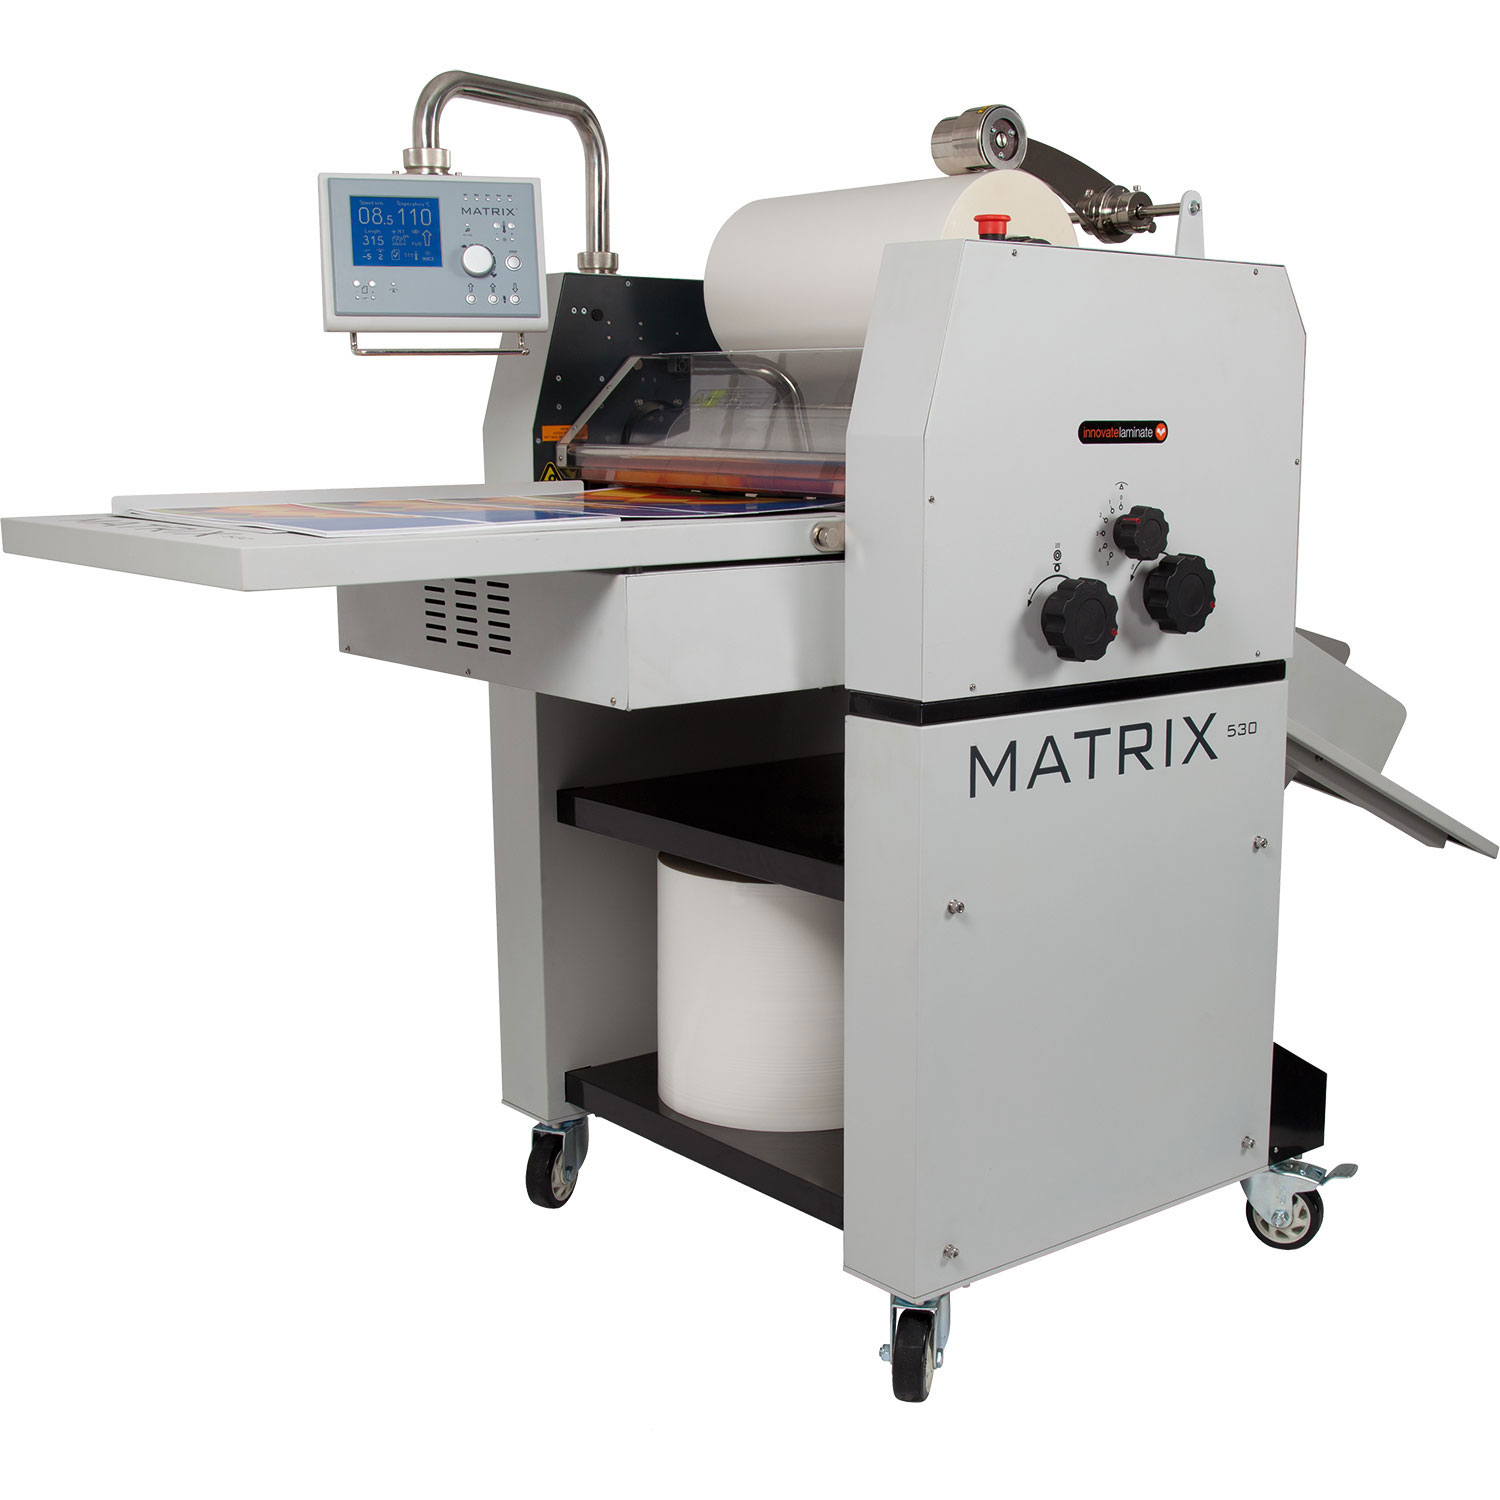 Matrix MX-530 Single-sided Roll Laminator